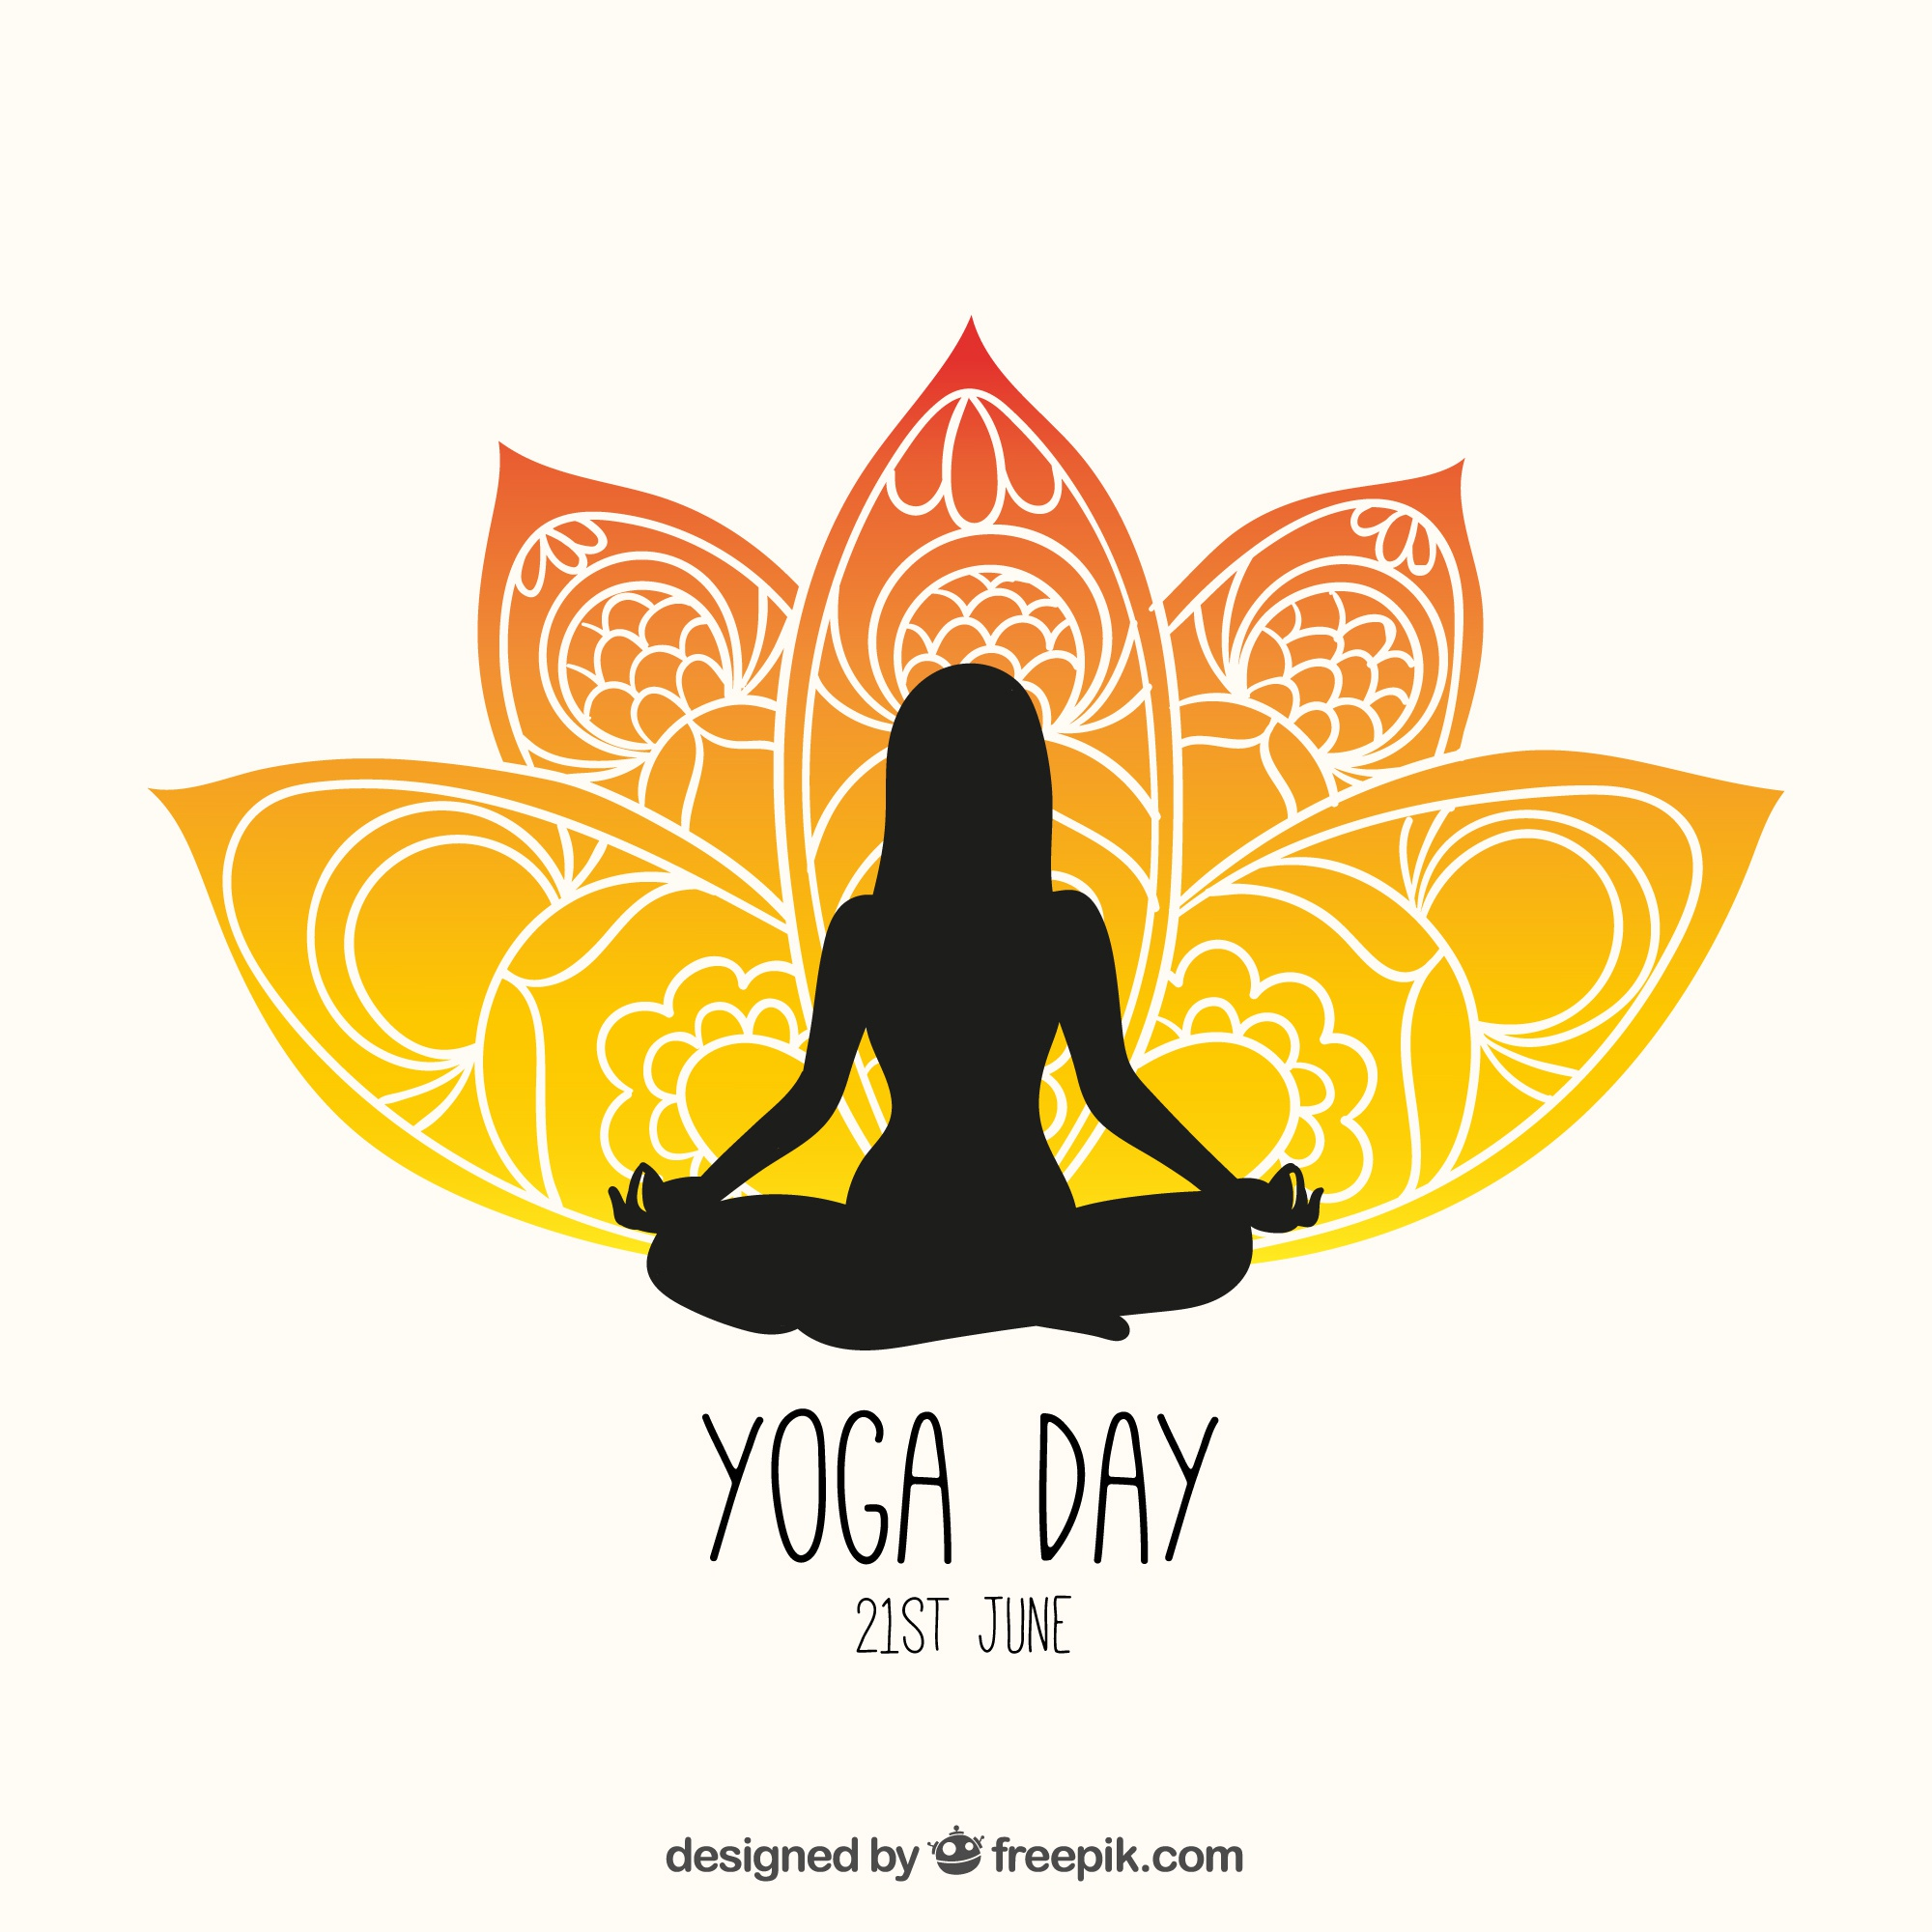 Yoga day flyer